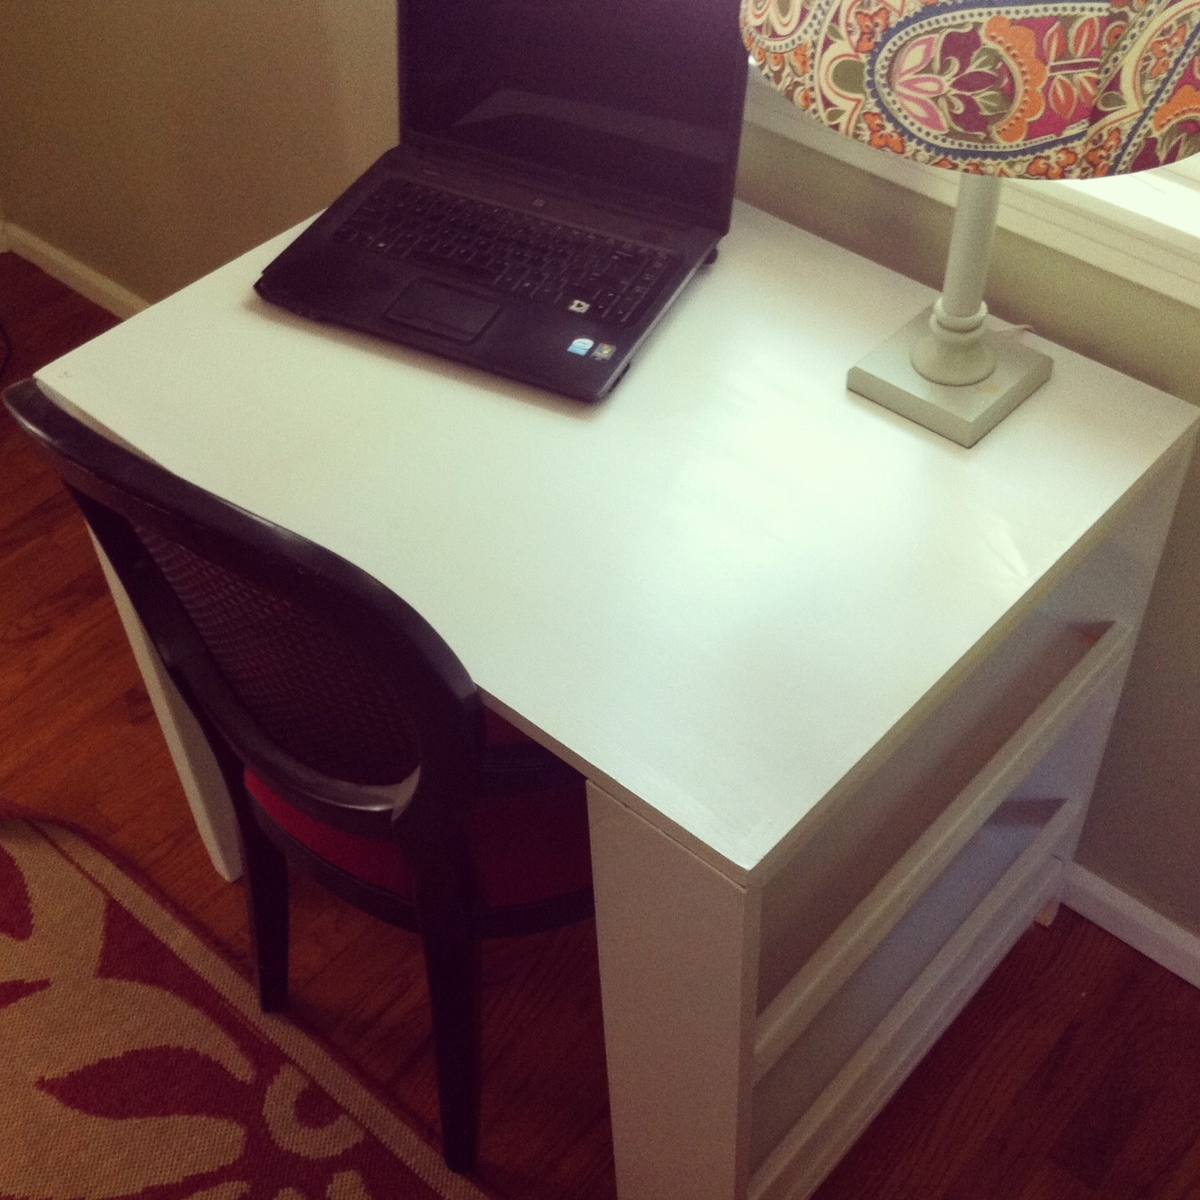 Ana white modified small desk for my niece diy projects modified small desk for my niece solutioingenieria Images